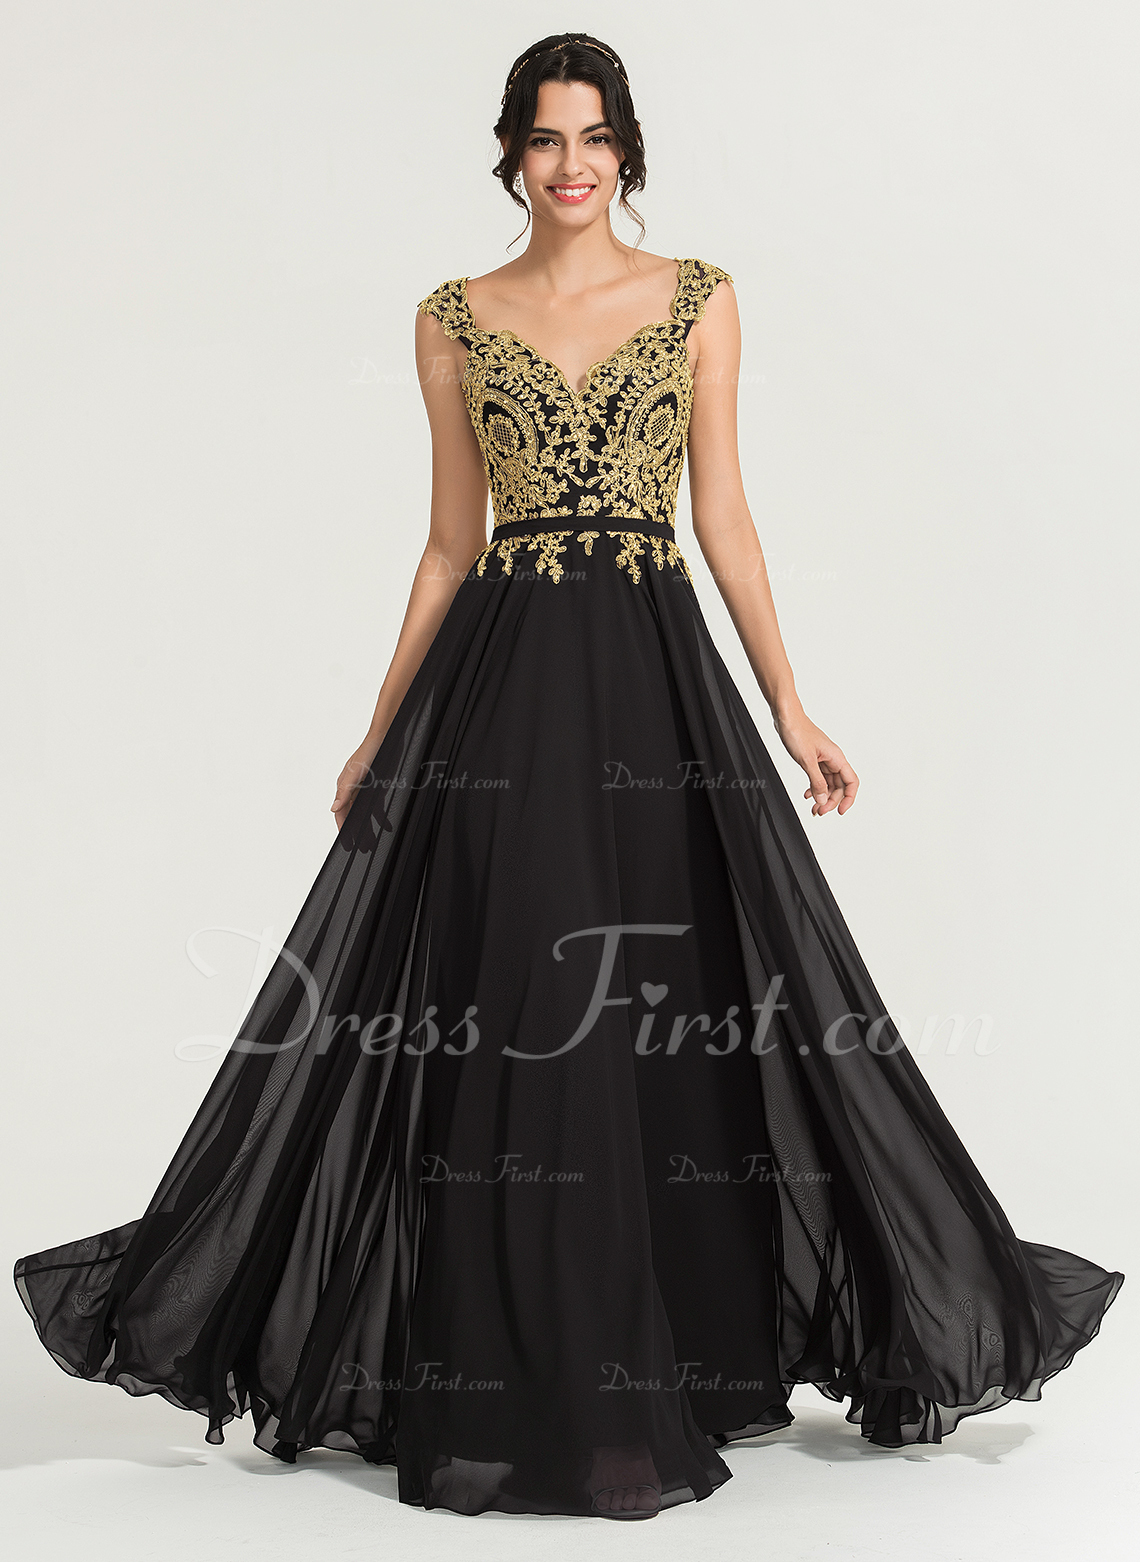 04392d2960a Loading zoom. Loading. Out of Stock. Color  Black. A-Line Princess V-neck  Floor-Length Chiffon Prom Dresses With Beading ...